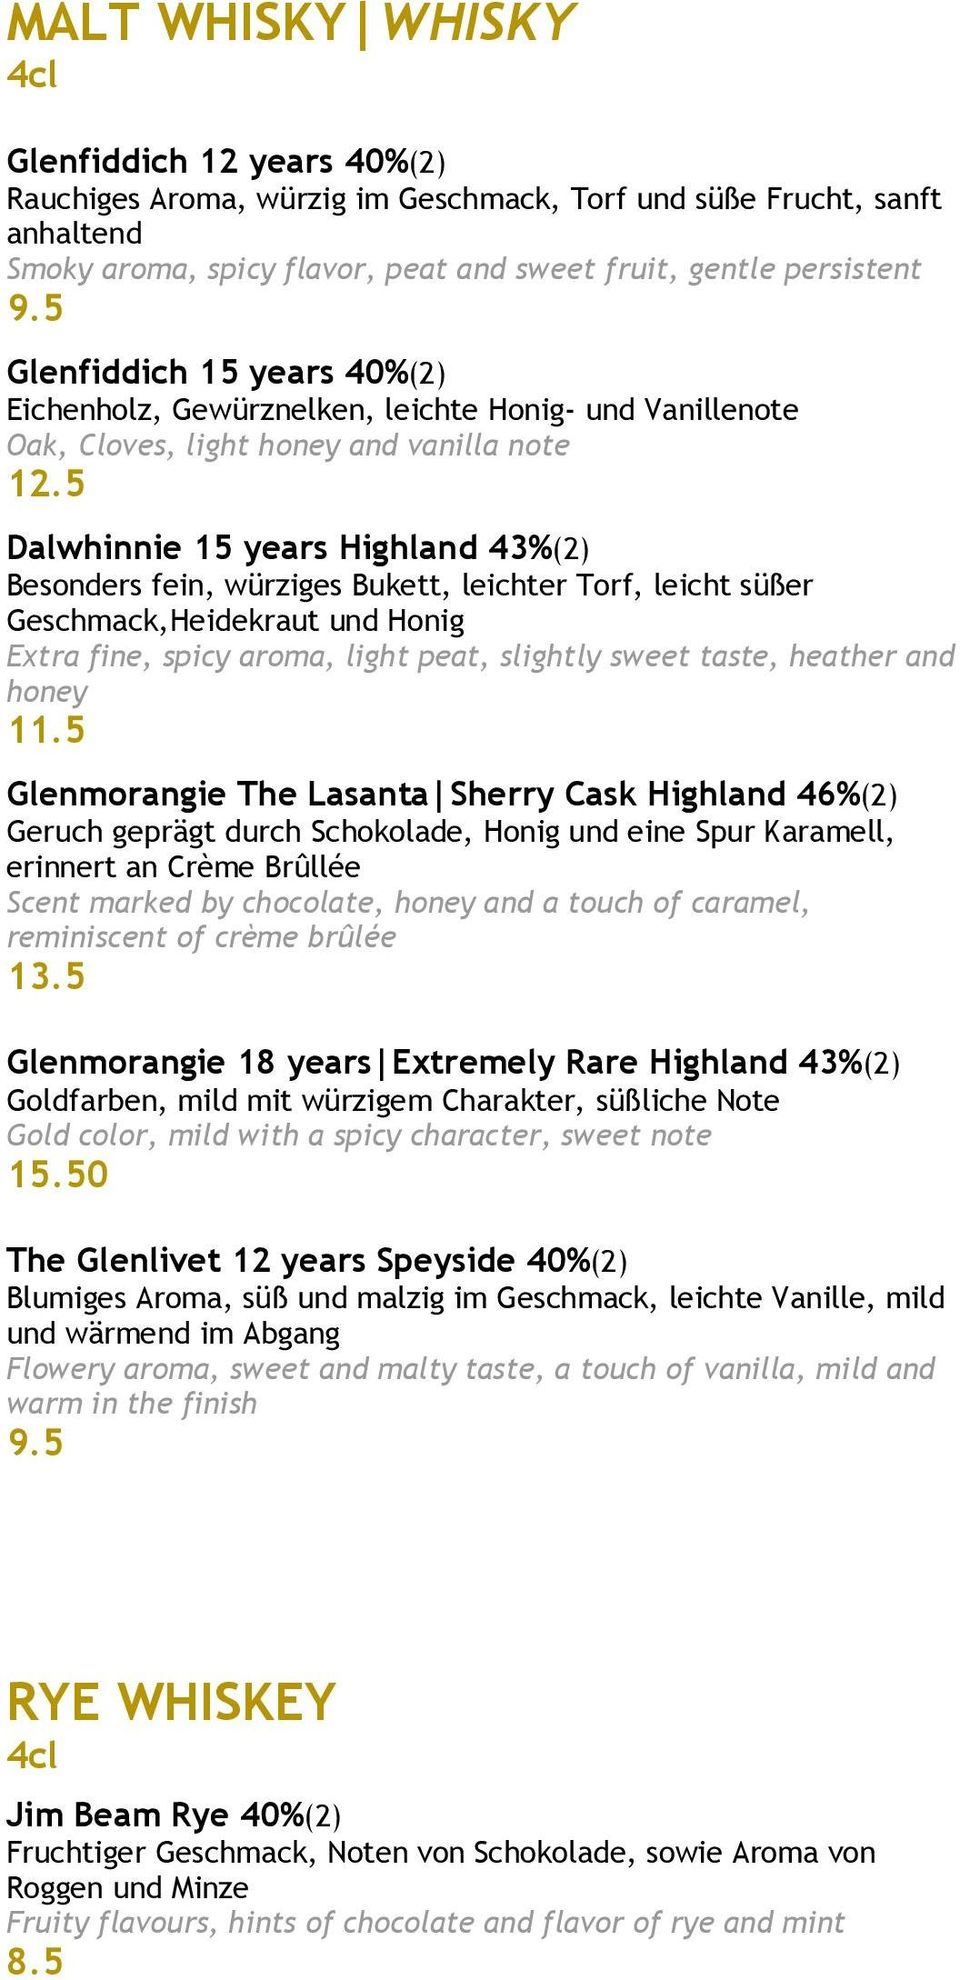 5 Dalwhinnie 15 years Highland 43%(2) Besonders fein, würziges Bukett, leichter Torf, leicht süßer Geschmack,Heidekraut und Honig Extra fine, spicy aroma, light peat, slightly sweet taste, heather